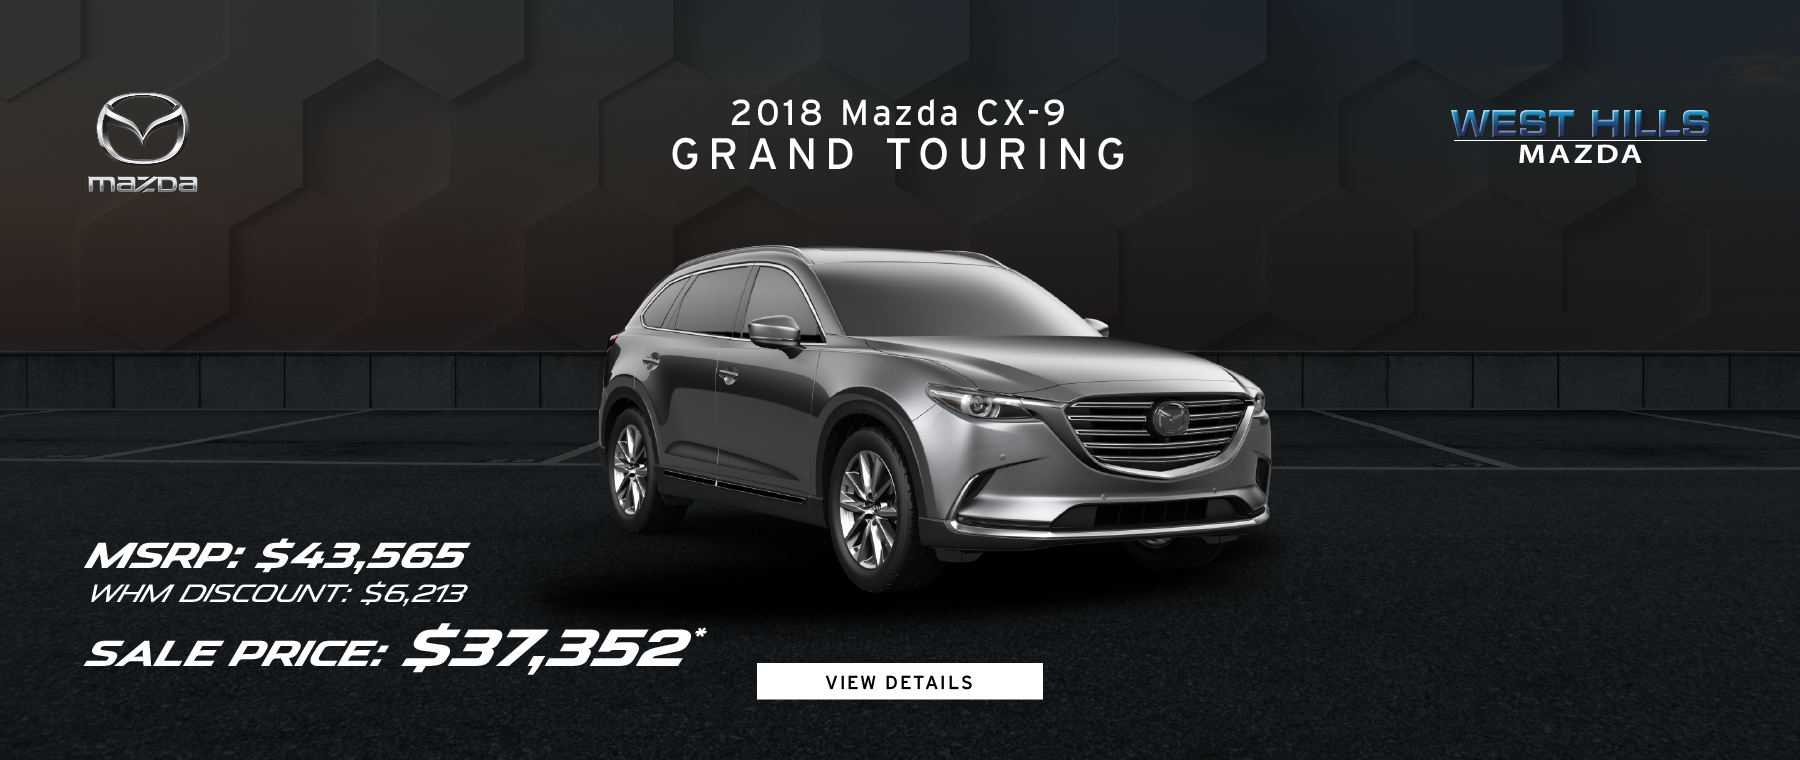 2018 Mazda CX-9 Grand Touring (Featured Vehicle)  MSRP: $43,565 WHM Discount: $6,213 Sale Price: $37,352* *Valid on 2018 Mazda CX-9 Grand Touring. Valid on VIN: JM3TCBDY6J0237004. MSRP is $43,565. Dealer Discount of 6,213. Sale Price is $37,352. Subject to credit approval. Down payment and monthly payment may vary. Not all will qualify for rebate. Excludes state and local taxes, tags, registration and title, insurance and dealer charges. A negotiable dealer documentary service fee of up to $150 may be added to the sale price or capitalized cost. Limit one discount per vehicle per customer. See dealer for complete details. Offer Expires: 3/31/2019.